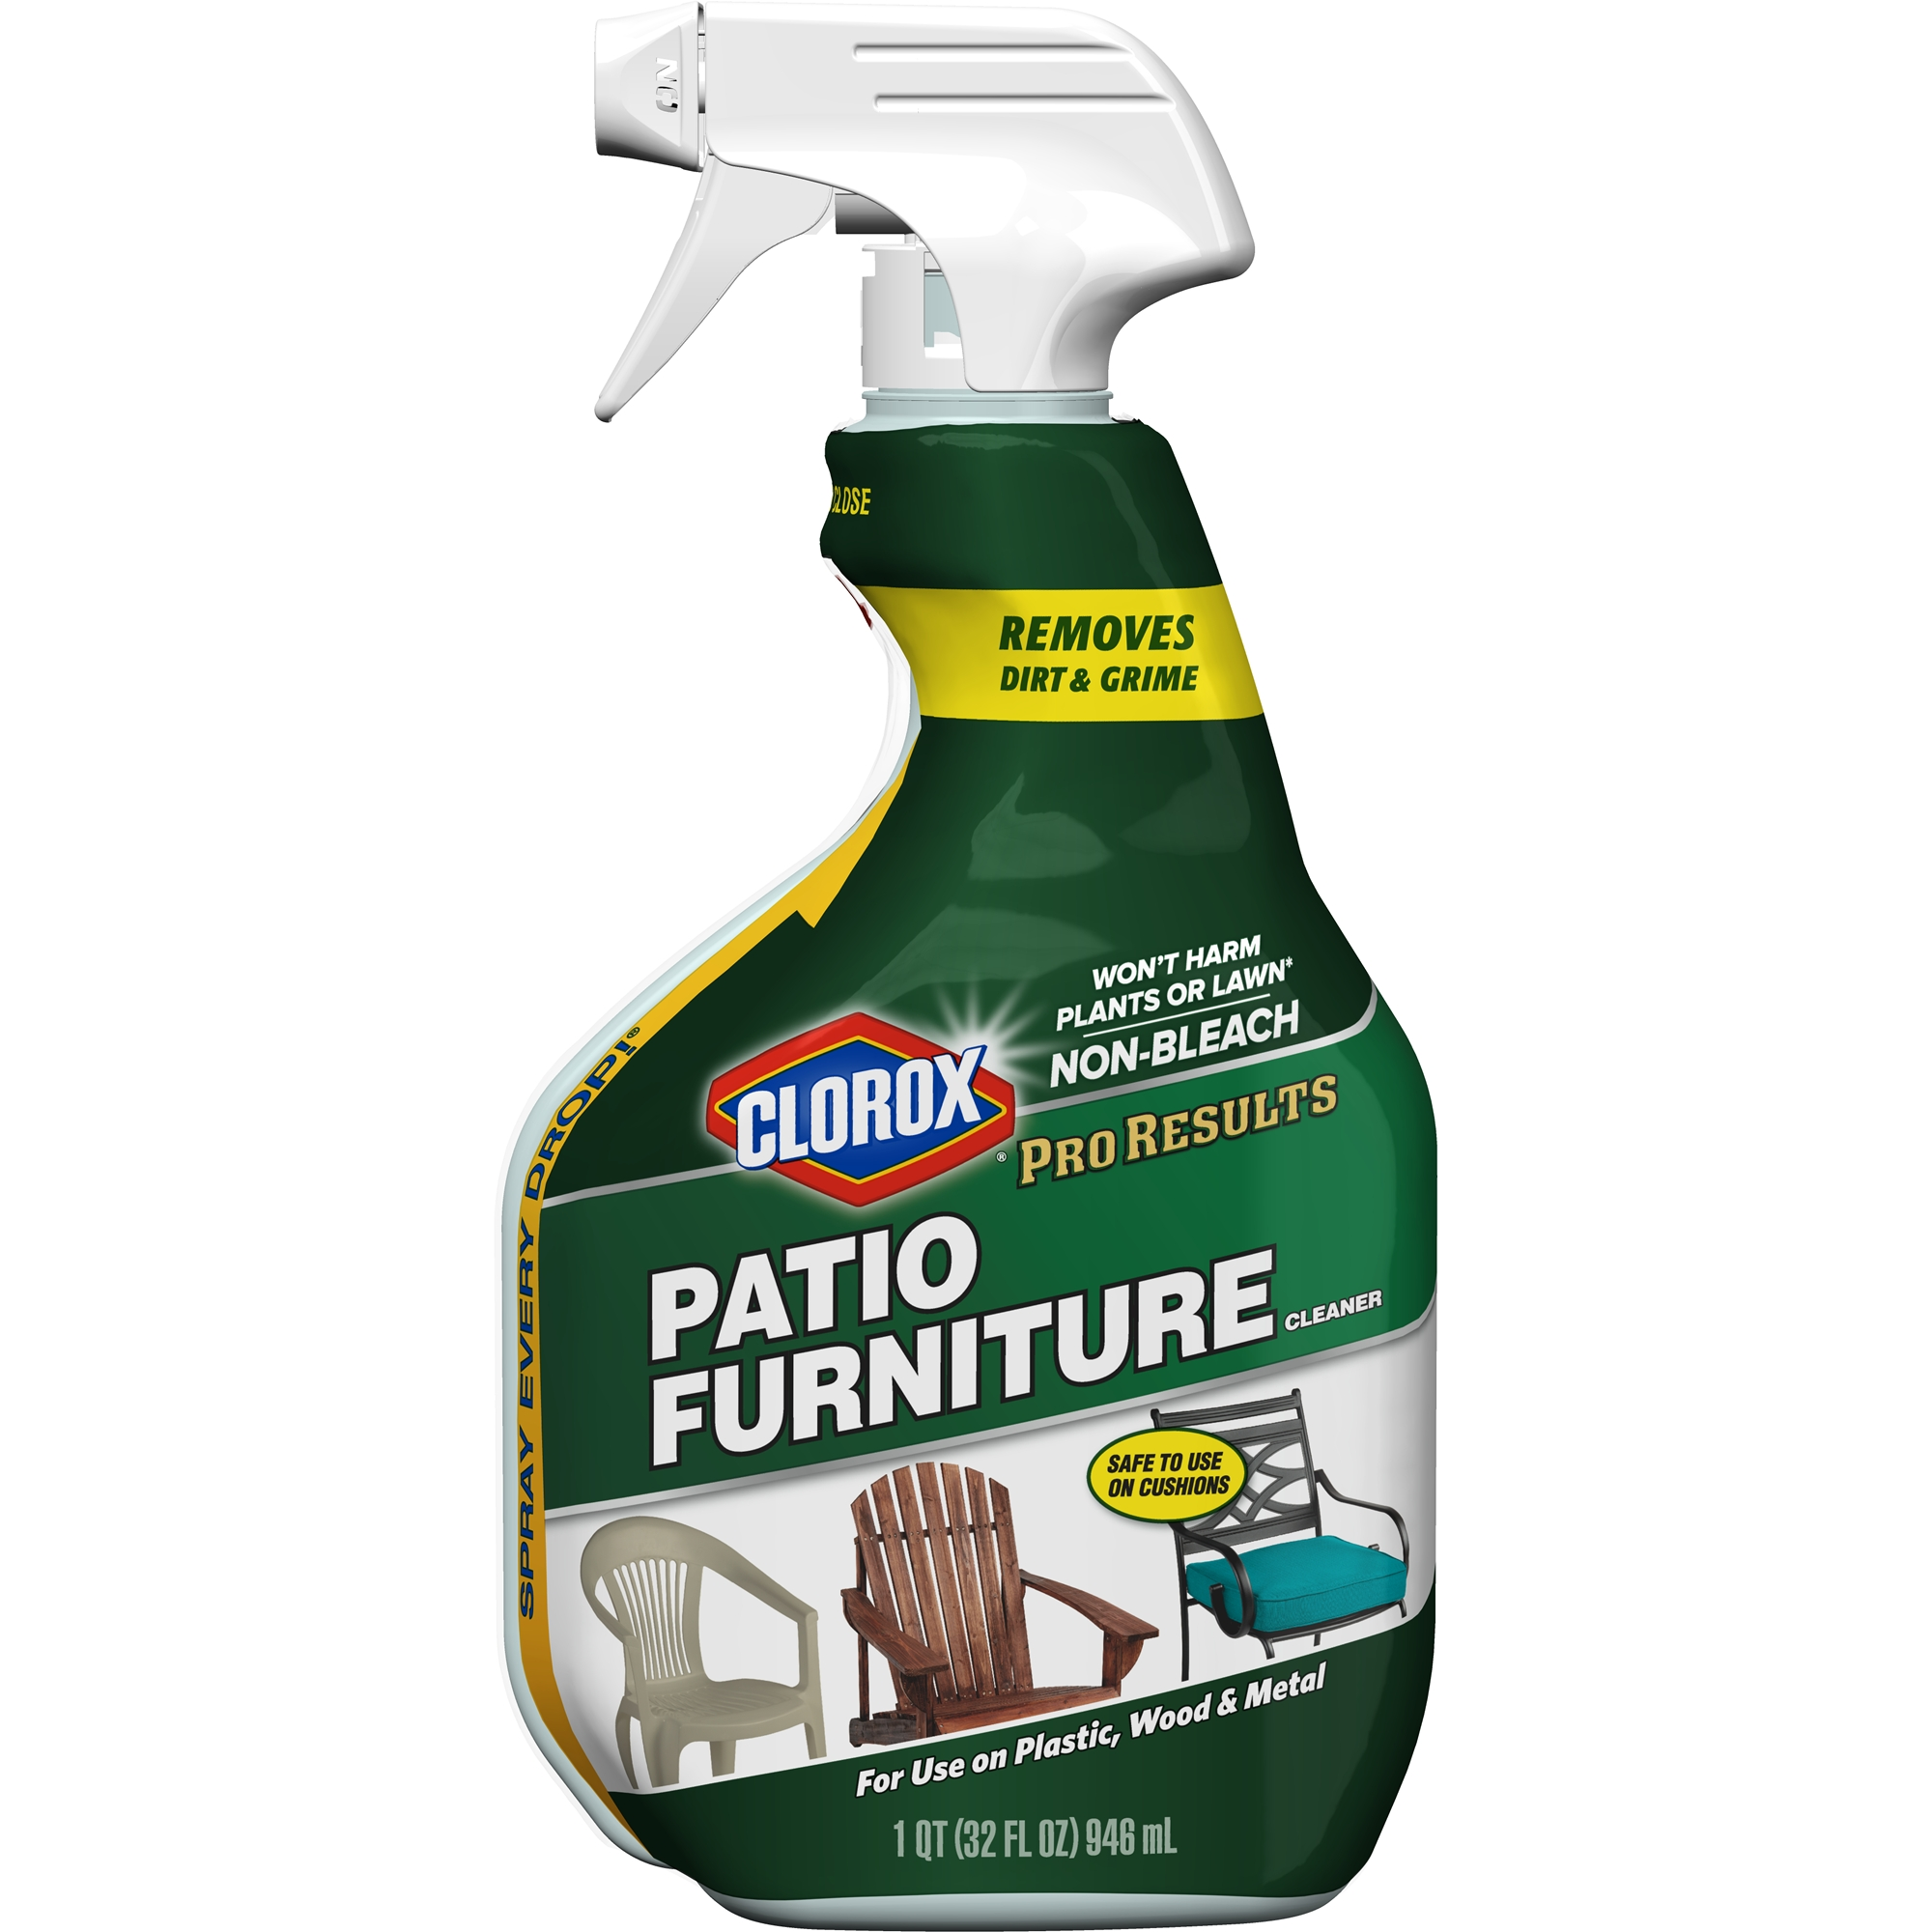 Clorox Pro Results Patio Furniture Cleaner, 32 oz